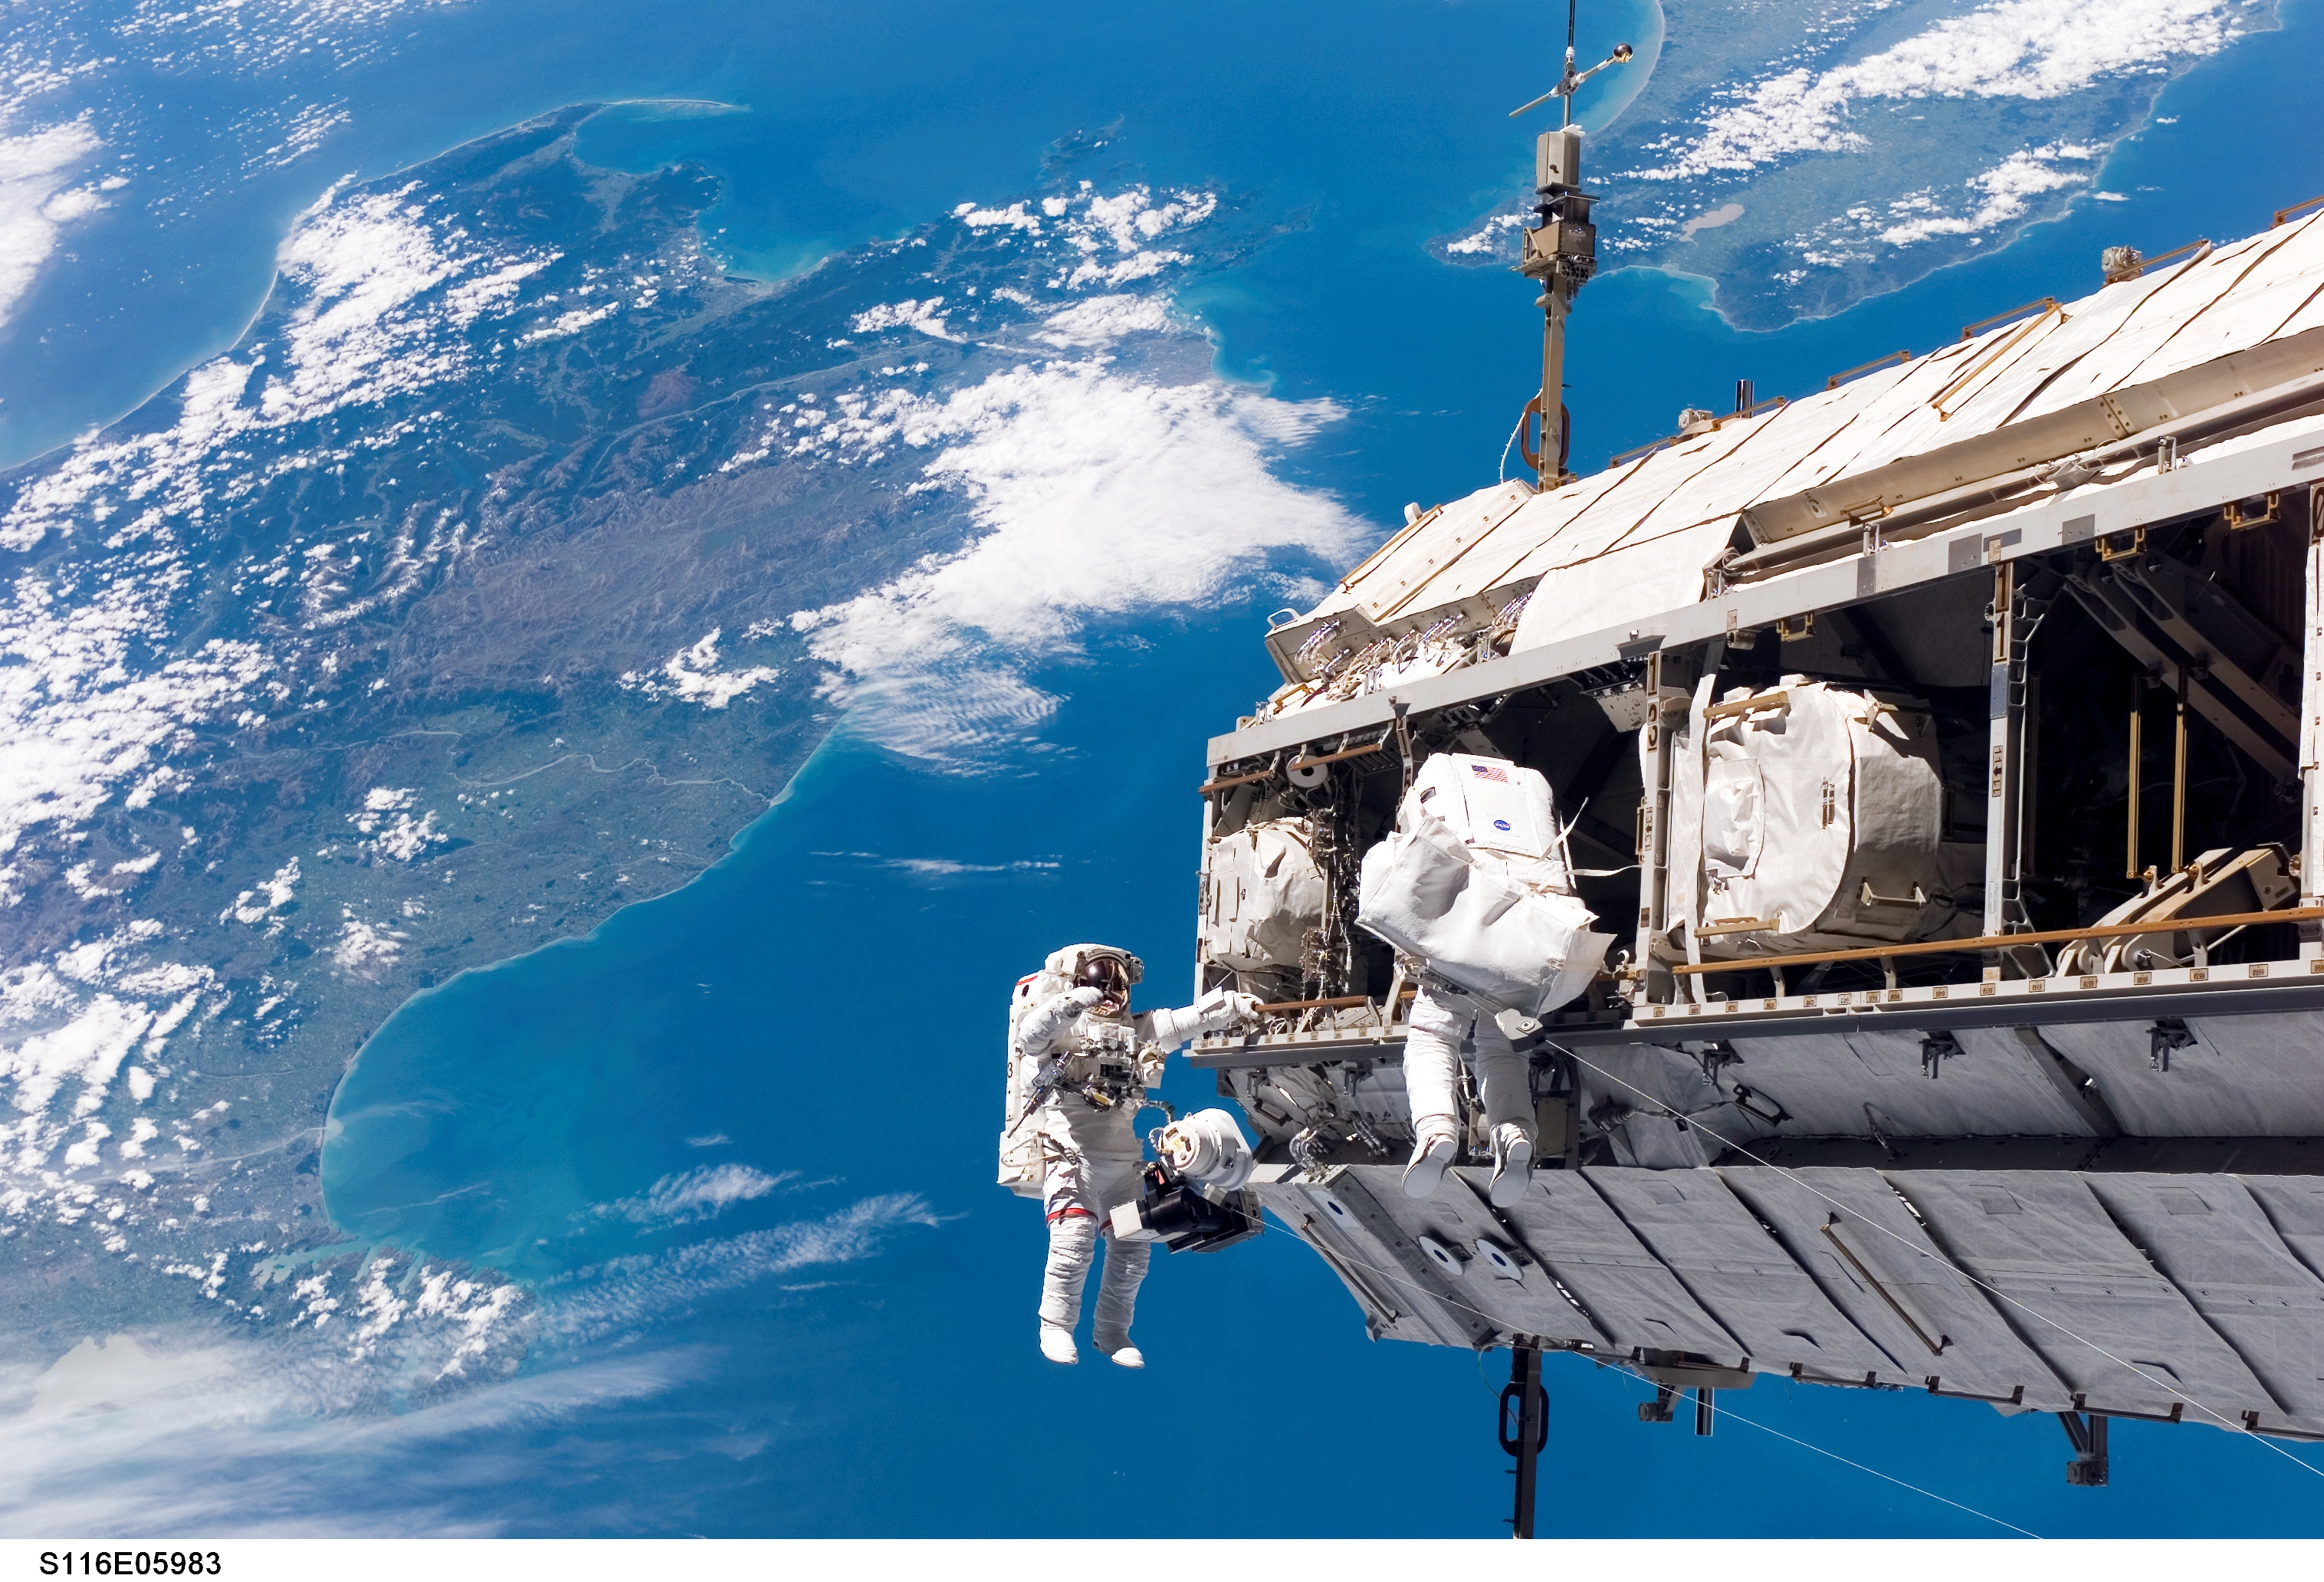 International Space Station Construction Continues over New Zealand